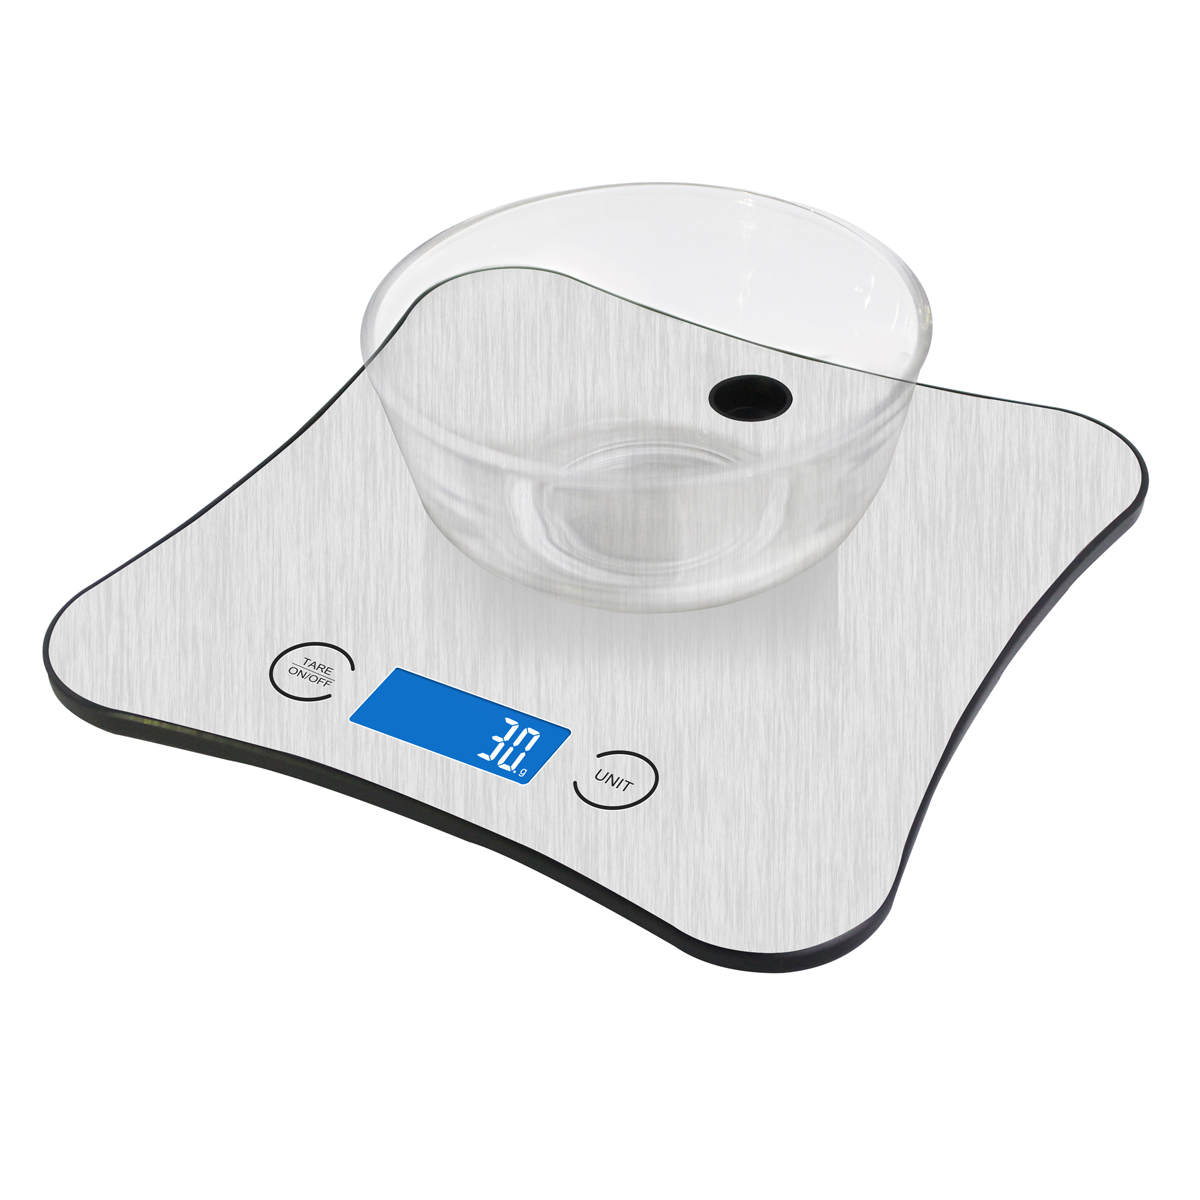 Platinet PNKS18 Smart Kitchen Scale | Bluetooth | Free Android & iOS App | LCD Display | Βάρος, Θερμίδες & Θρεπτικά Συστατικά